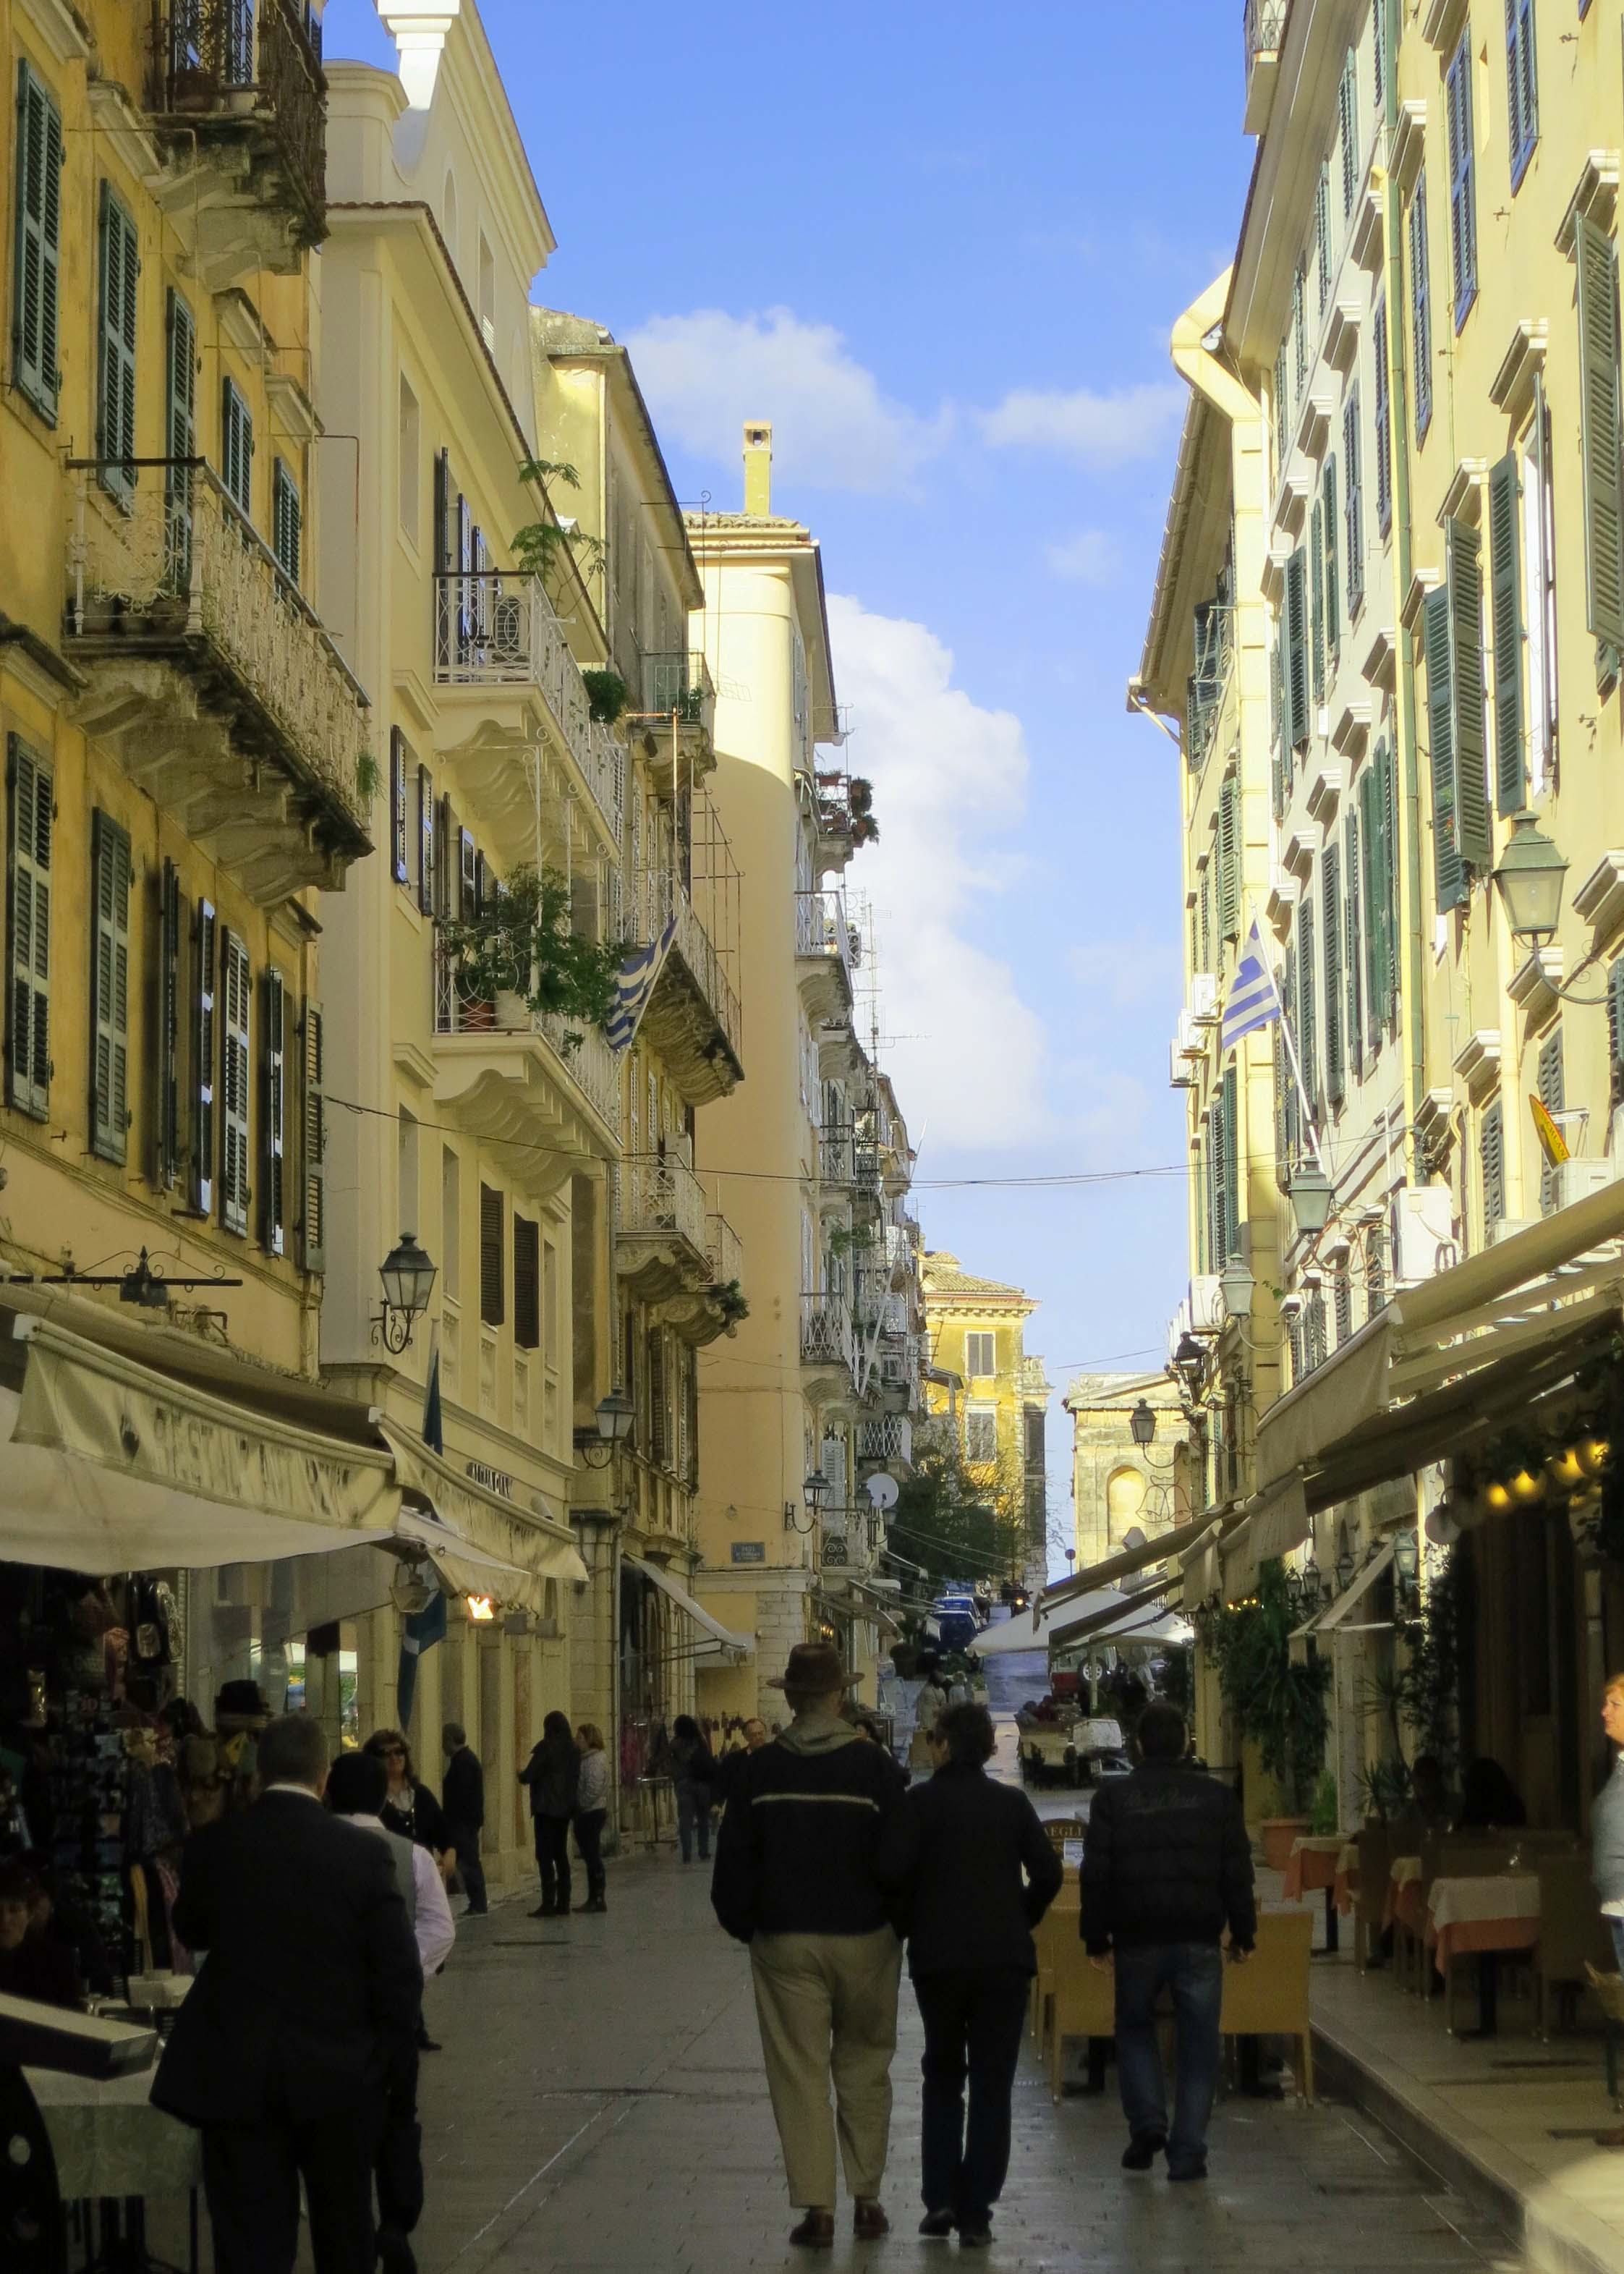 A Corfu Street scene. Once again we enjoyed the narrow, car-free streets as we did time and again in Europe.